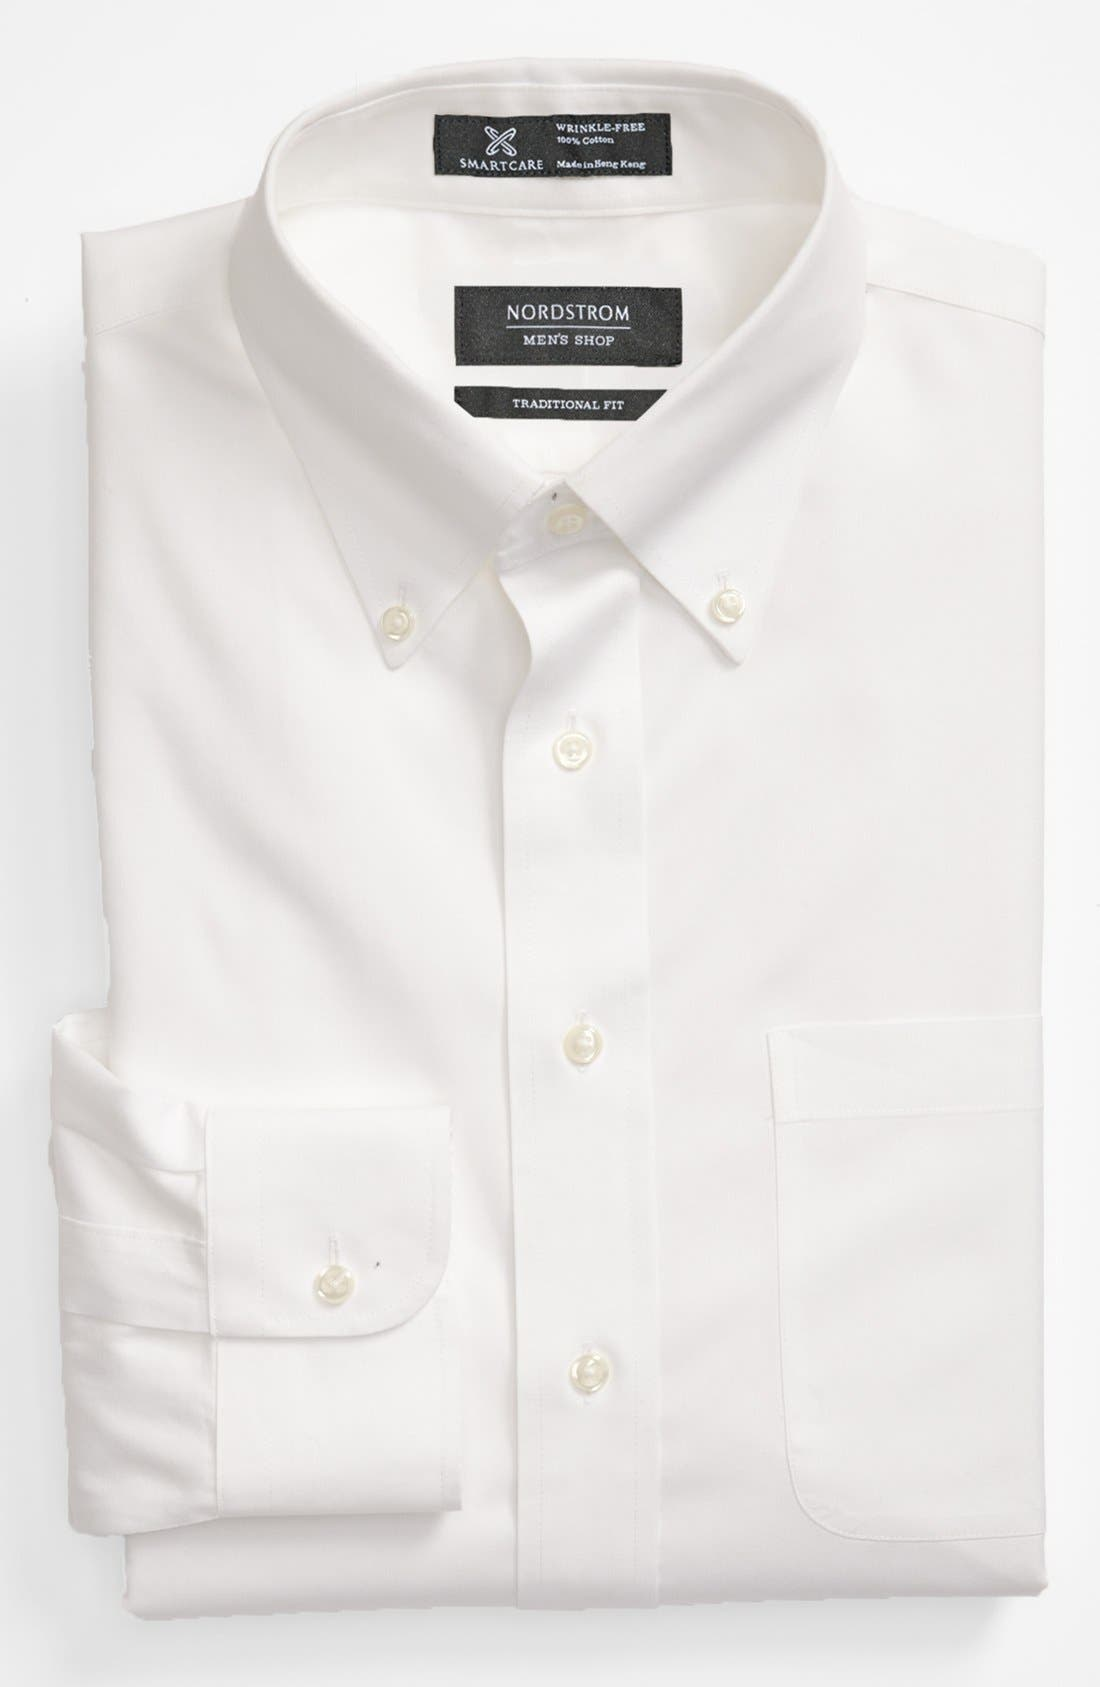 Nordstrom Shop Smartcare(TM) Traditional Fit Pinpoint Dress Shirt 33 - White